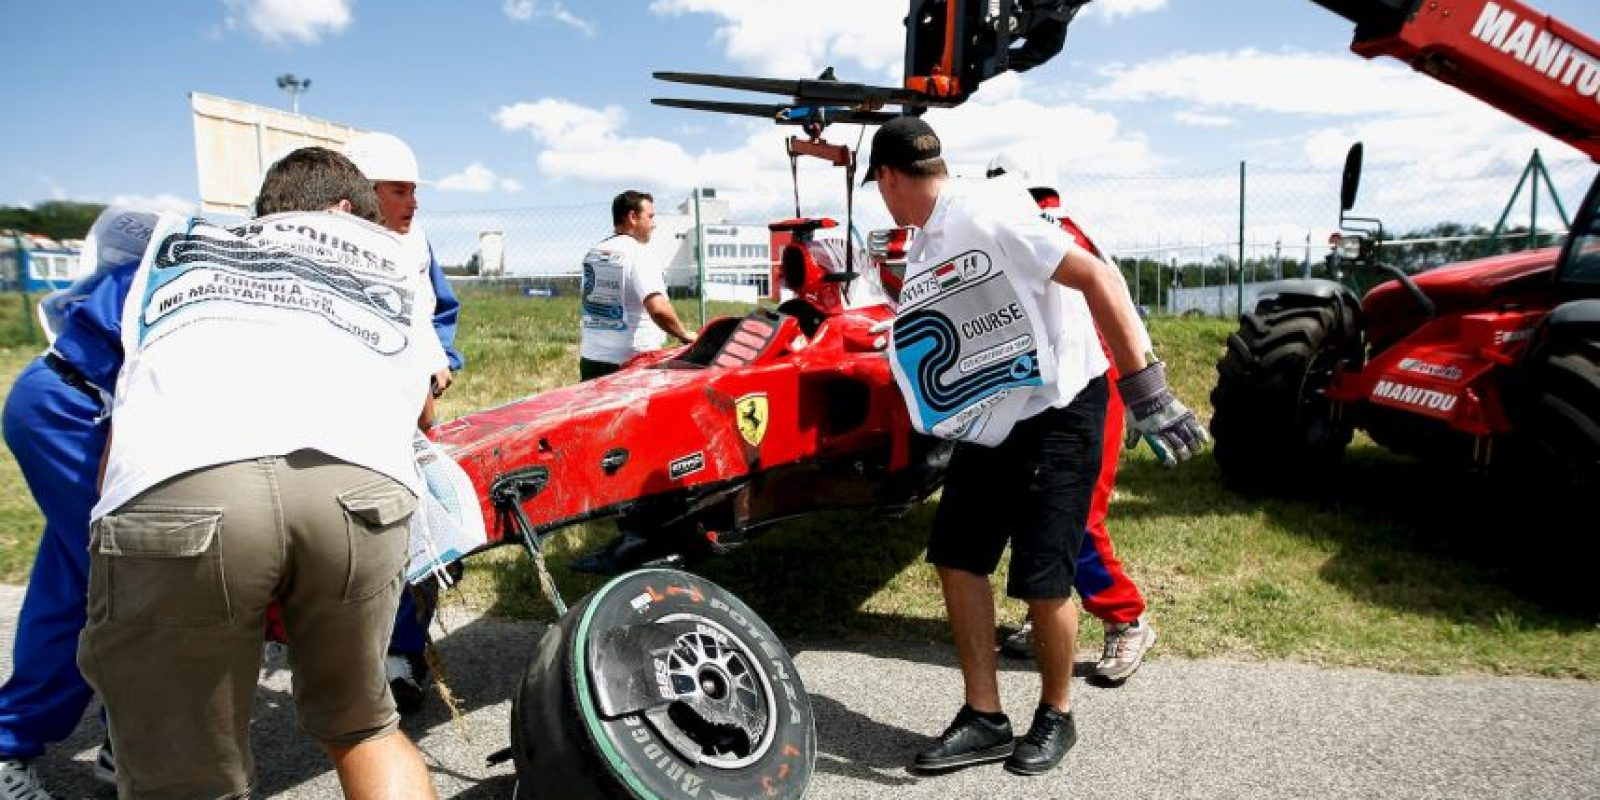 4. Felipe Massa (Ferrari) Foto: Getty Images